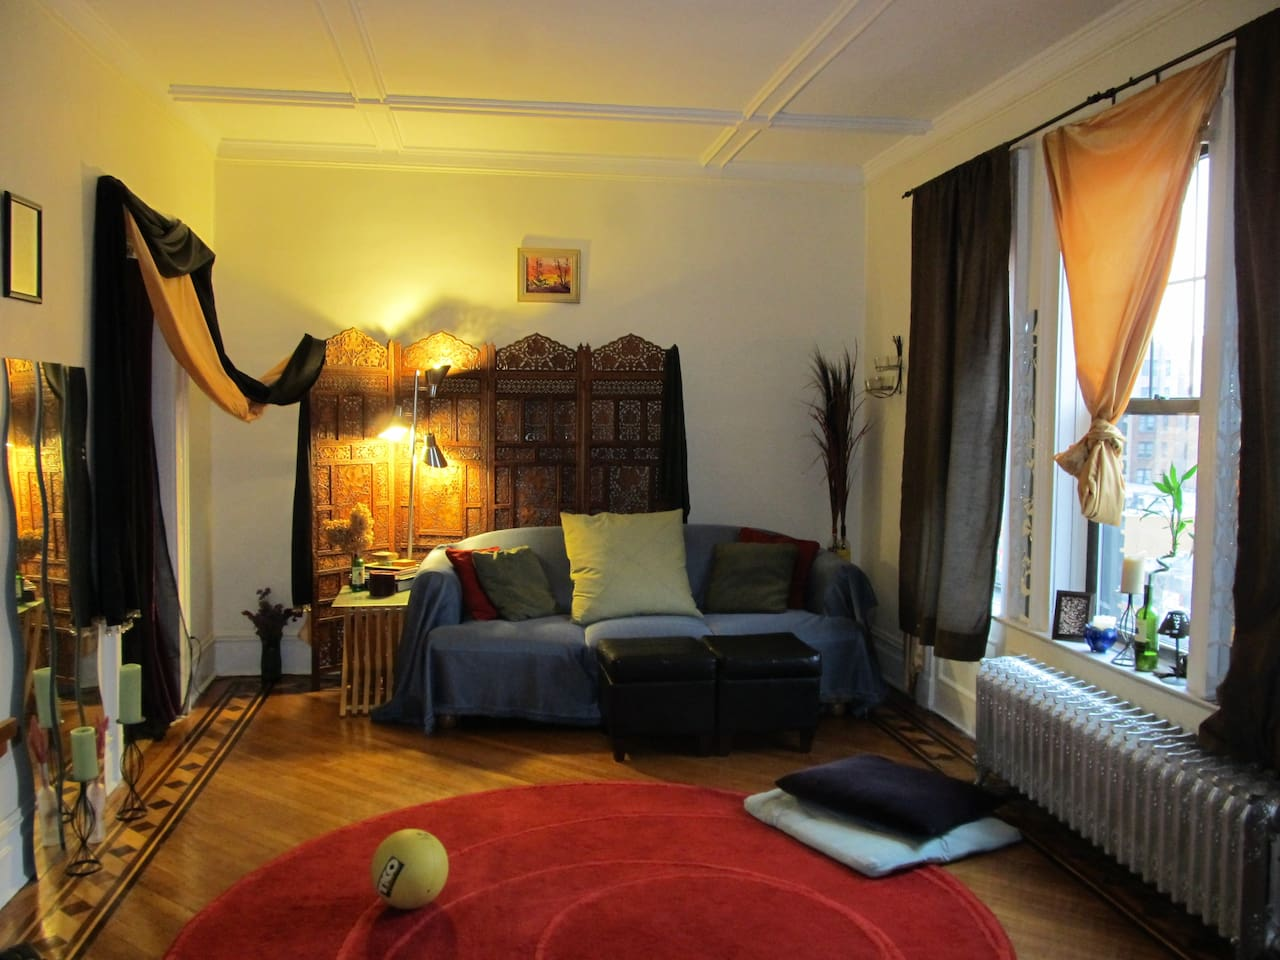 The Gustav Klimt living room!